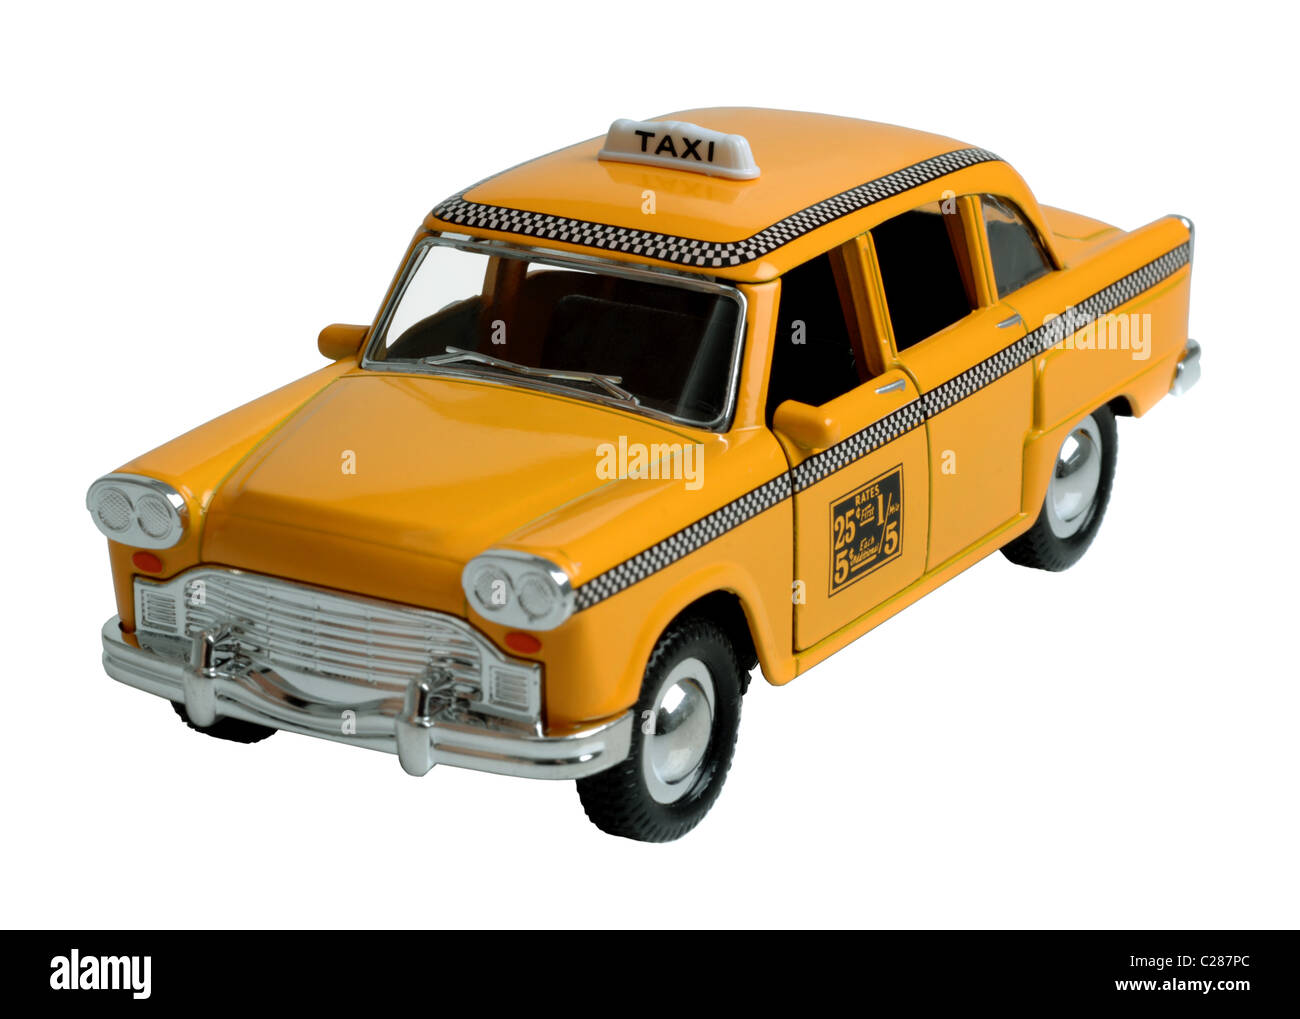 New York taxi, toy New York taxicab - Stock Image